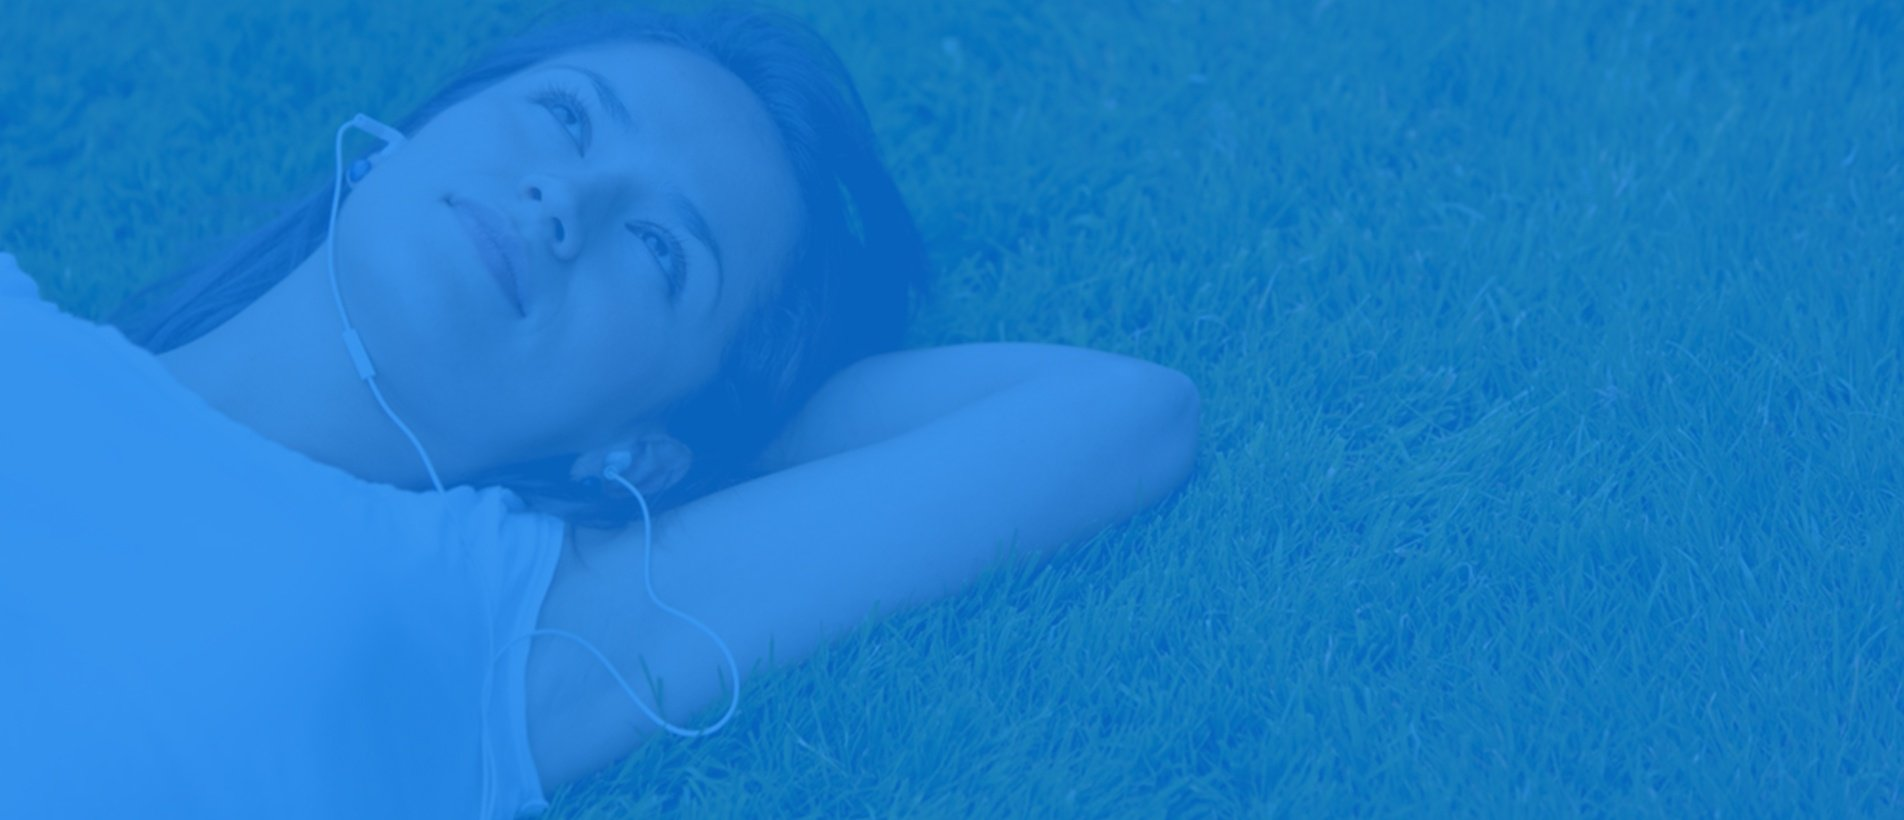 Pensive woman lying on grass listening to music outdoors.jpeg